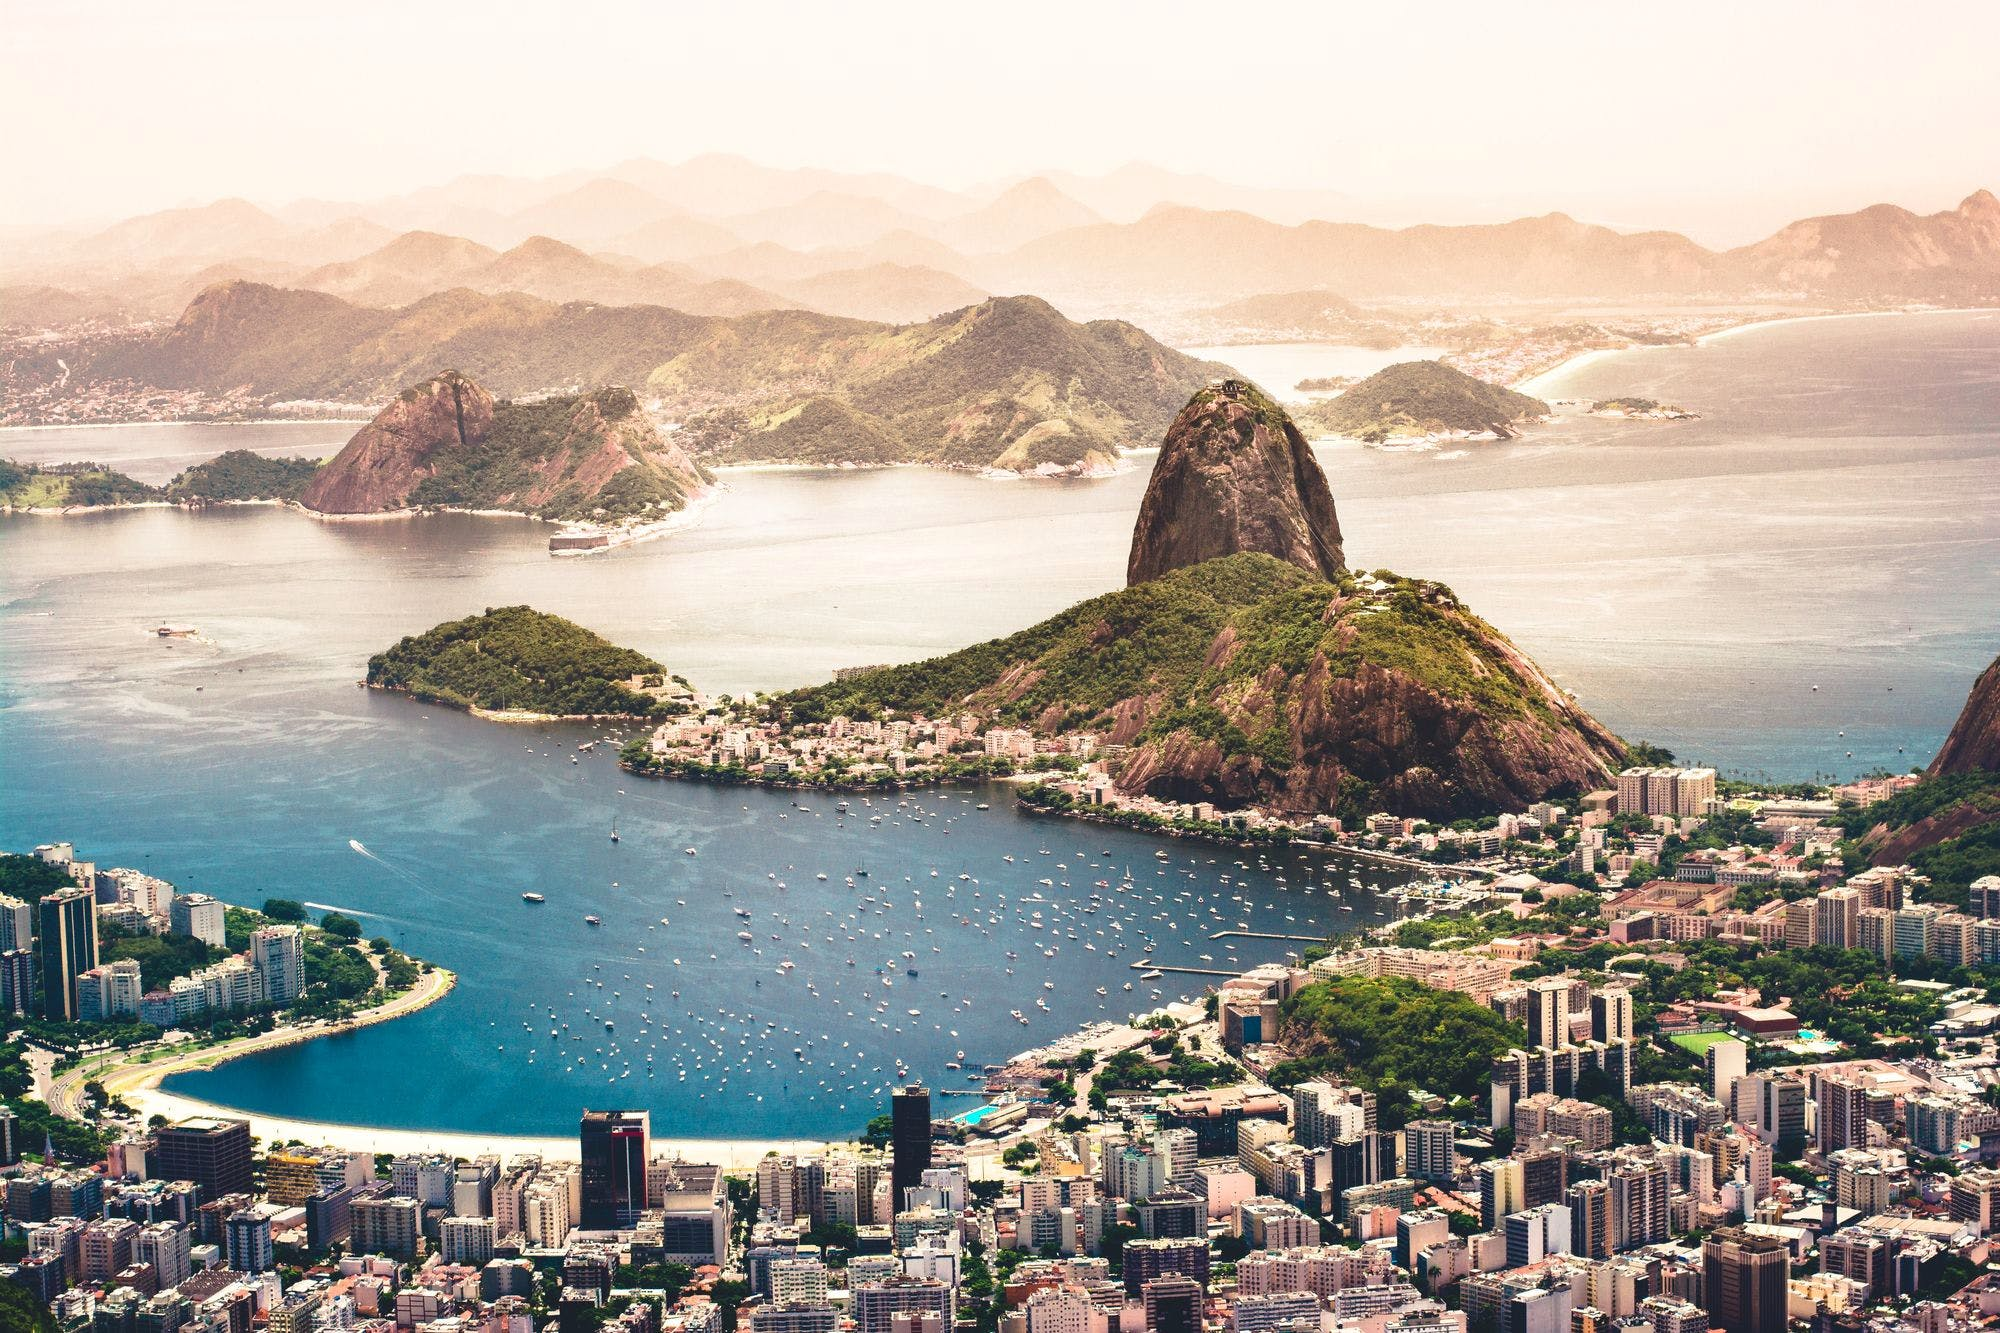 The Challenges of Fundraising in Brazil, According to Rise Venture's Pedro Vilela